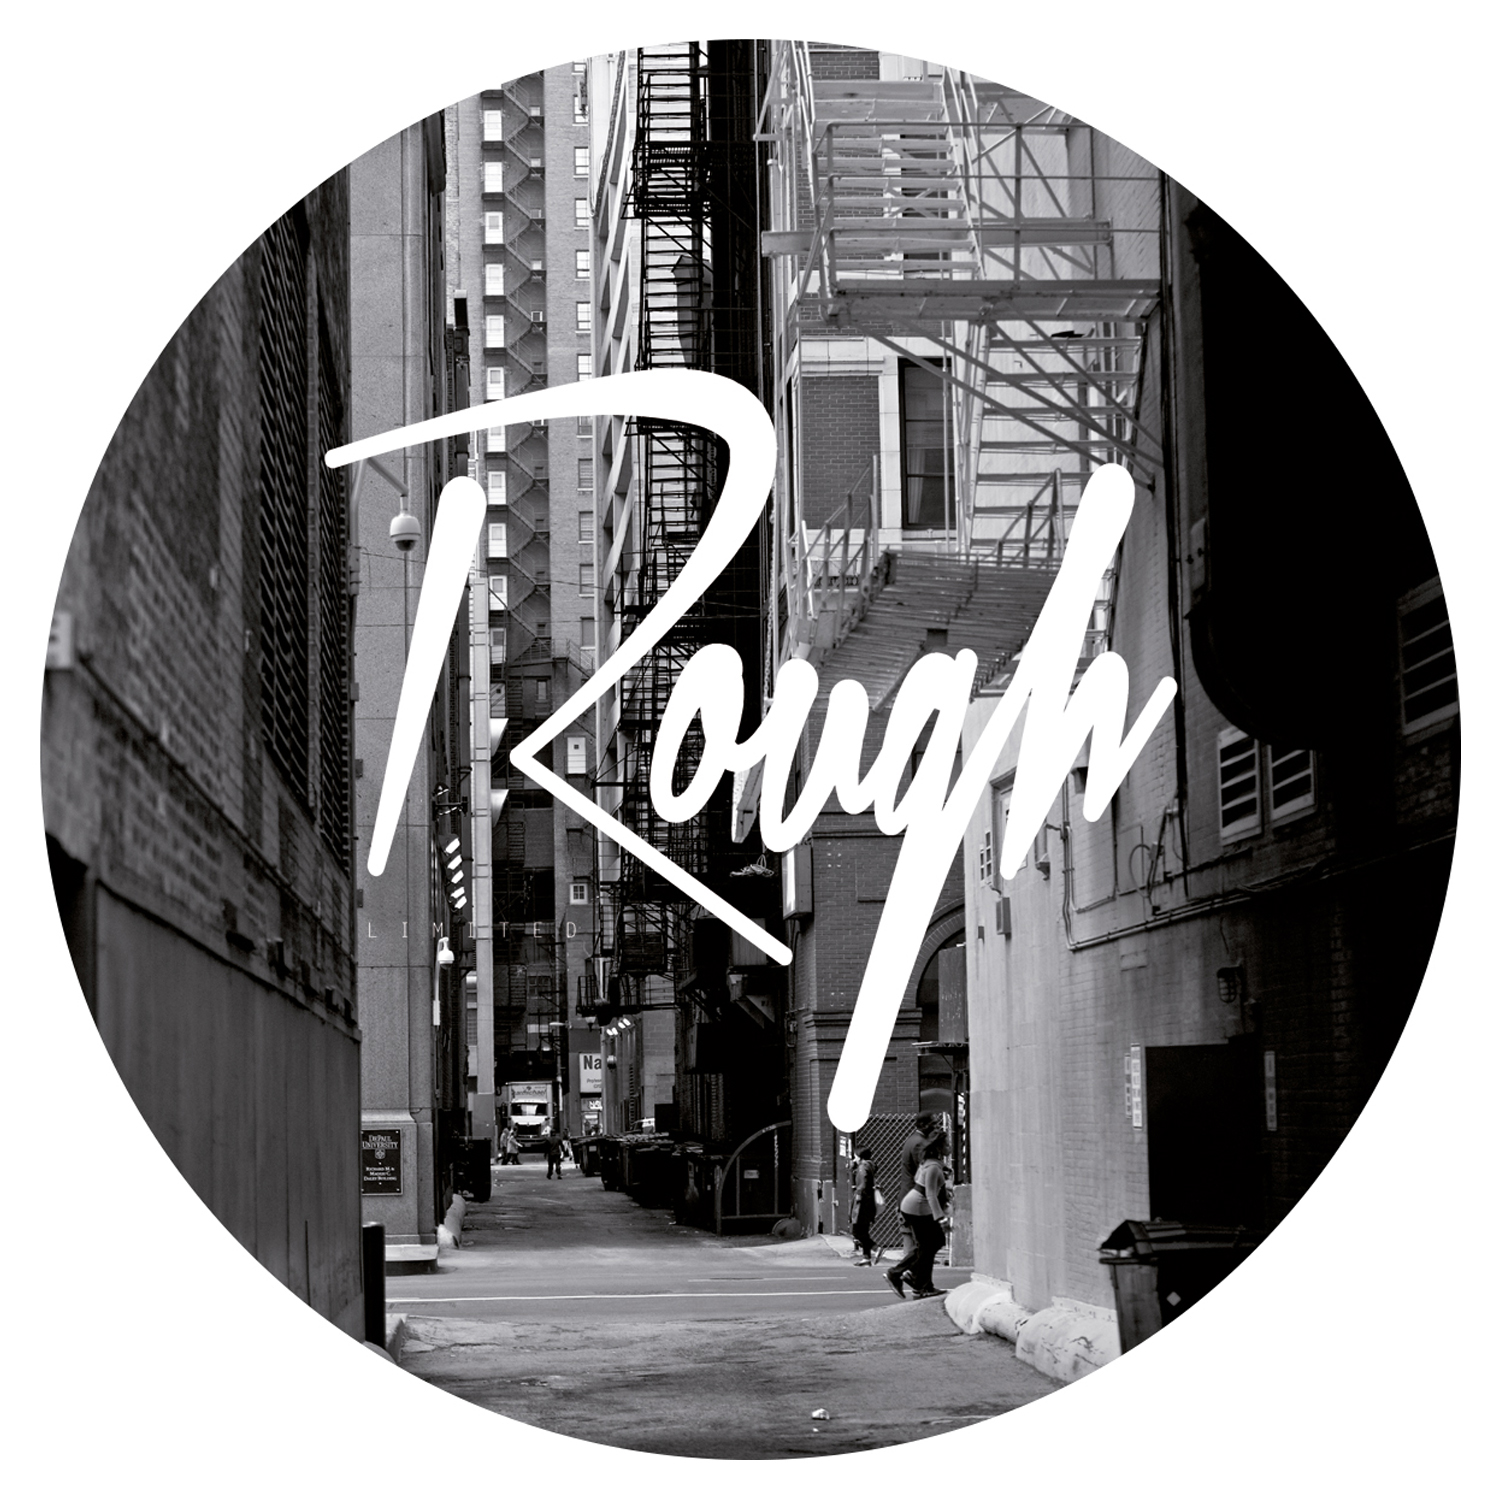 https://www.rough-recordings.com/wp-content/uploads/ROUGHLTD001_A.jpg